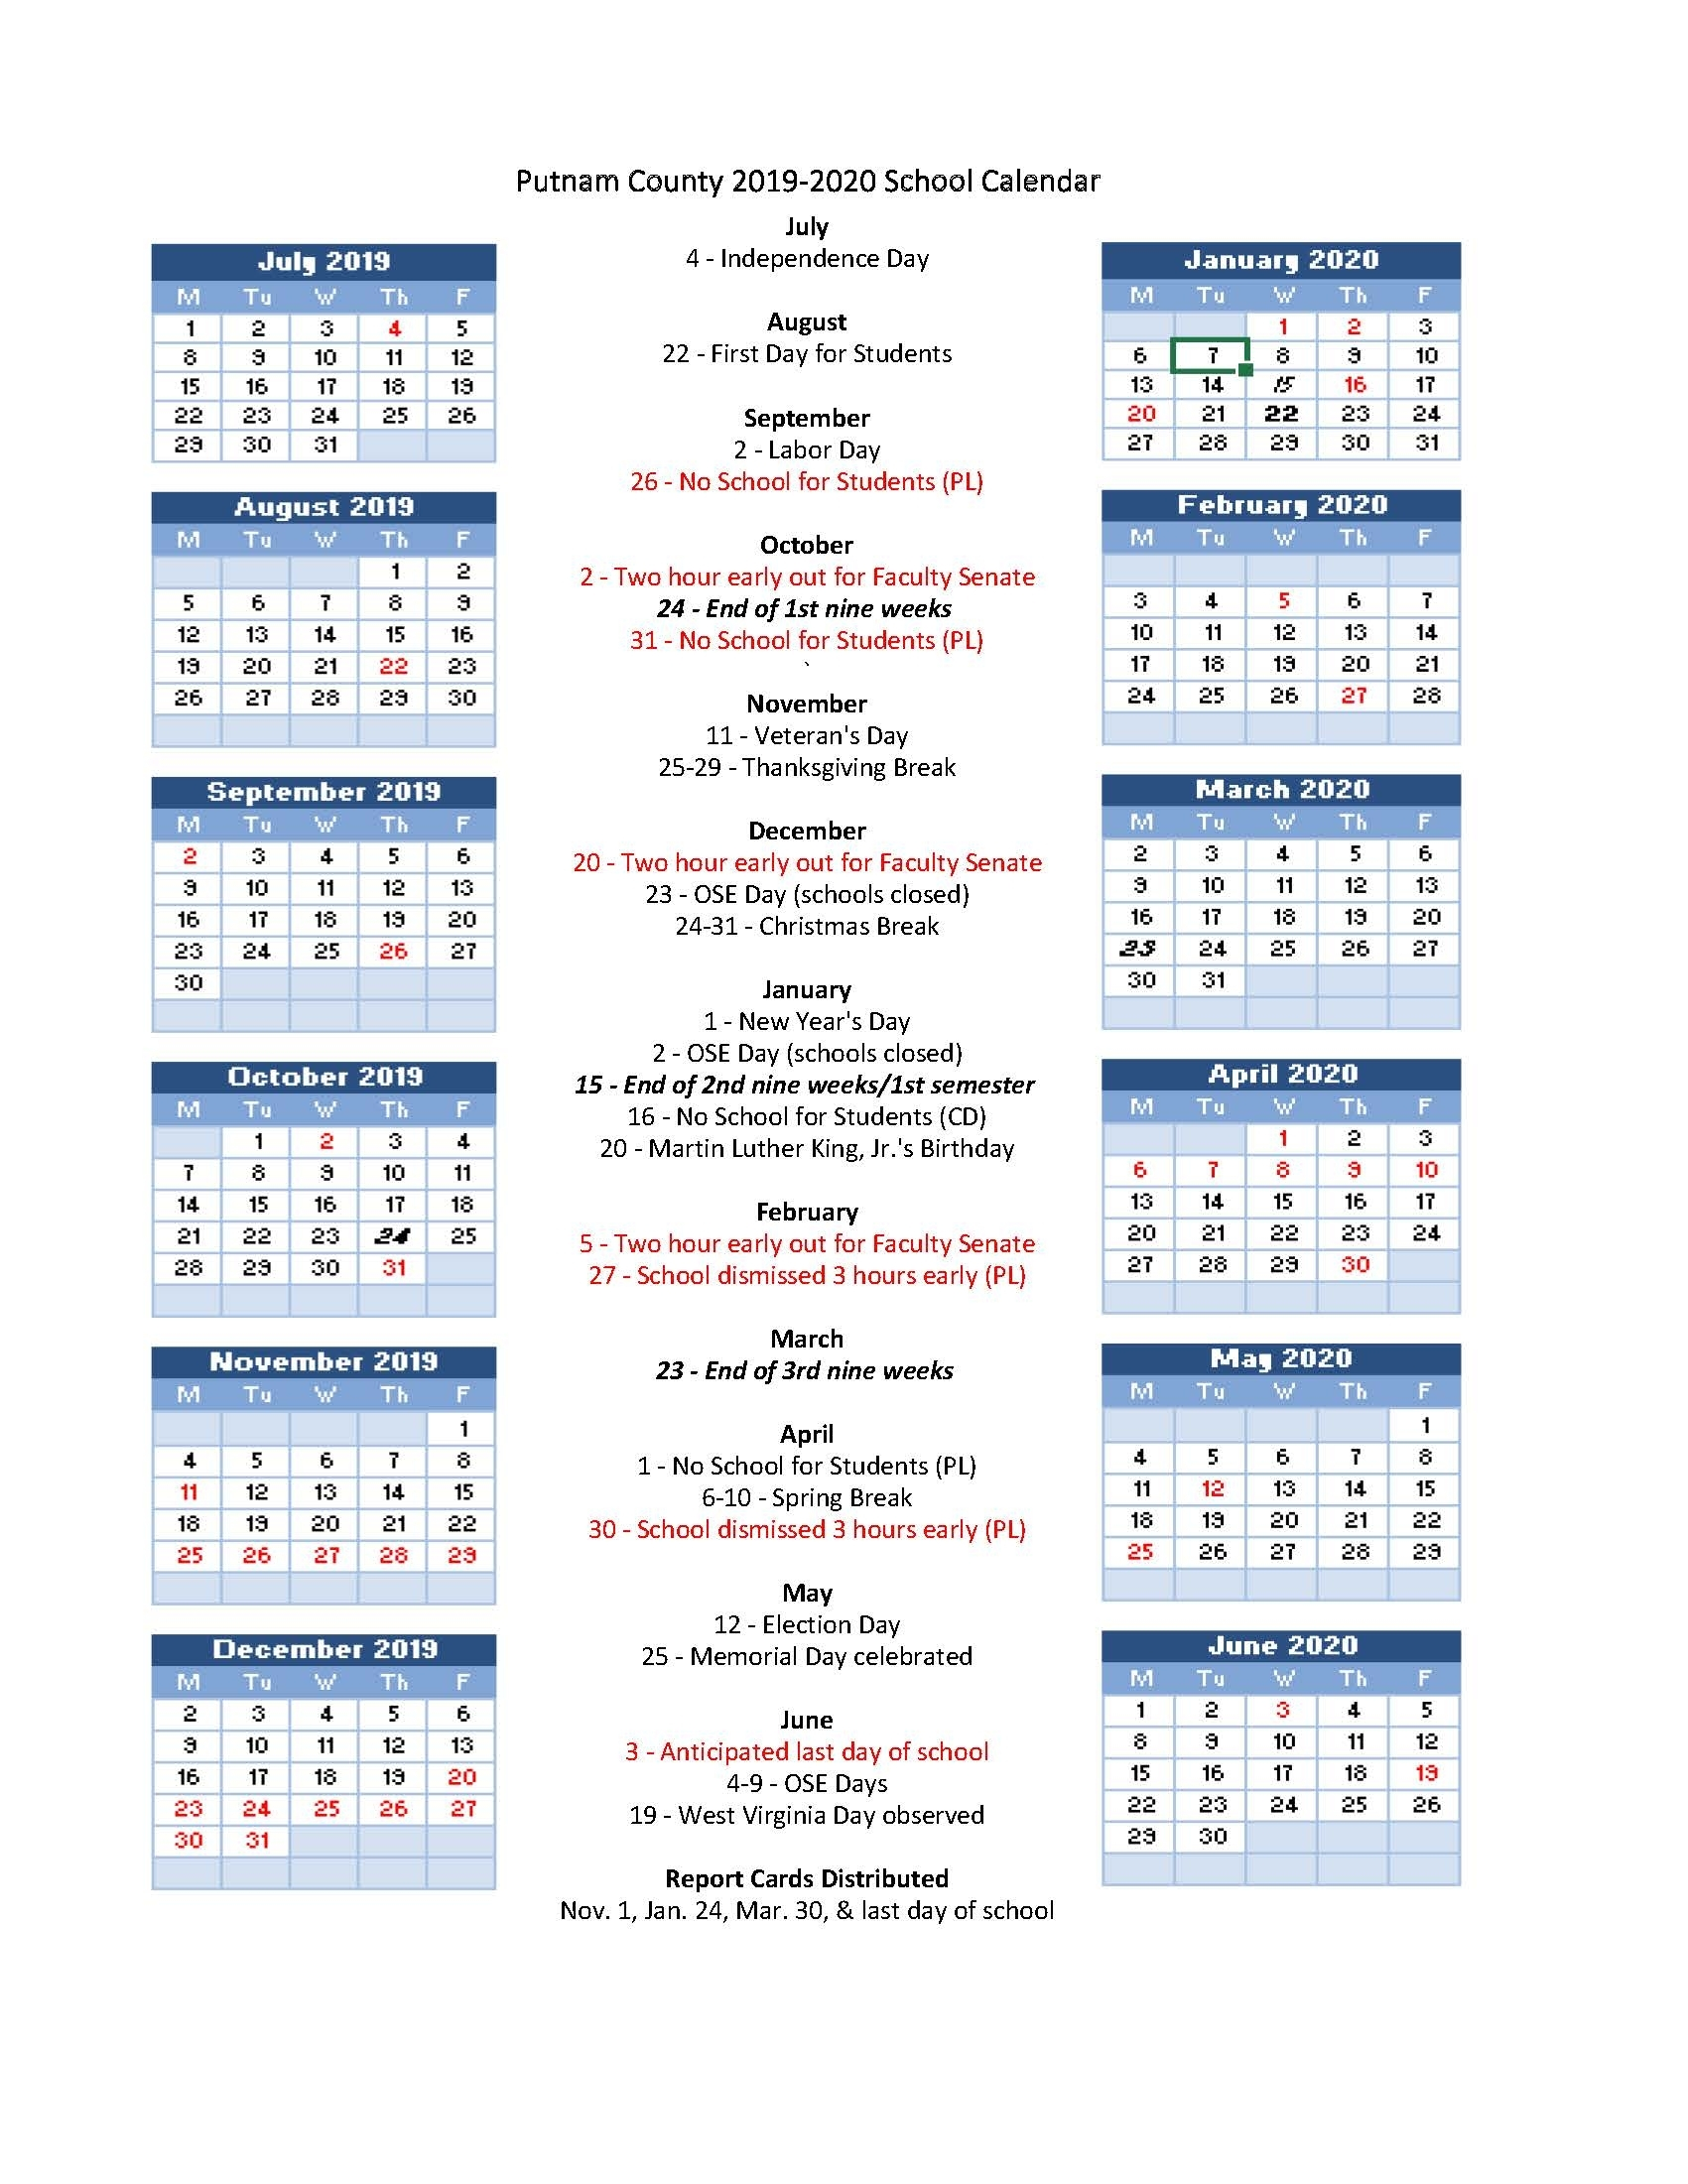 Pcs 2019-2020 School Calendar Highlights - Putnam County Schools with regard to Virginia Tech Academic Calendar 2019 2020